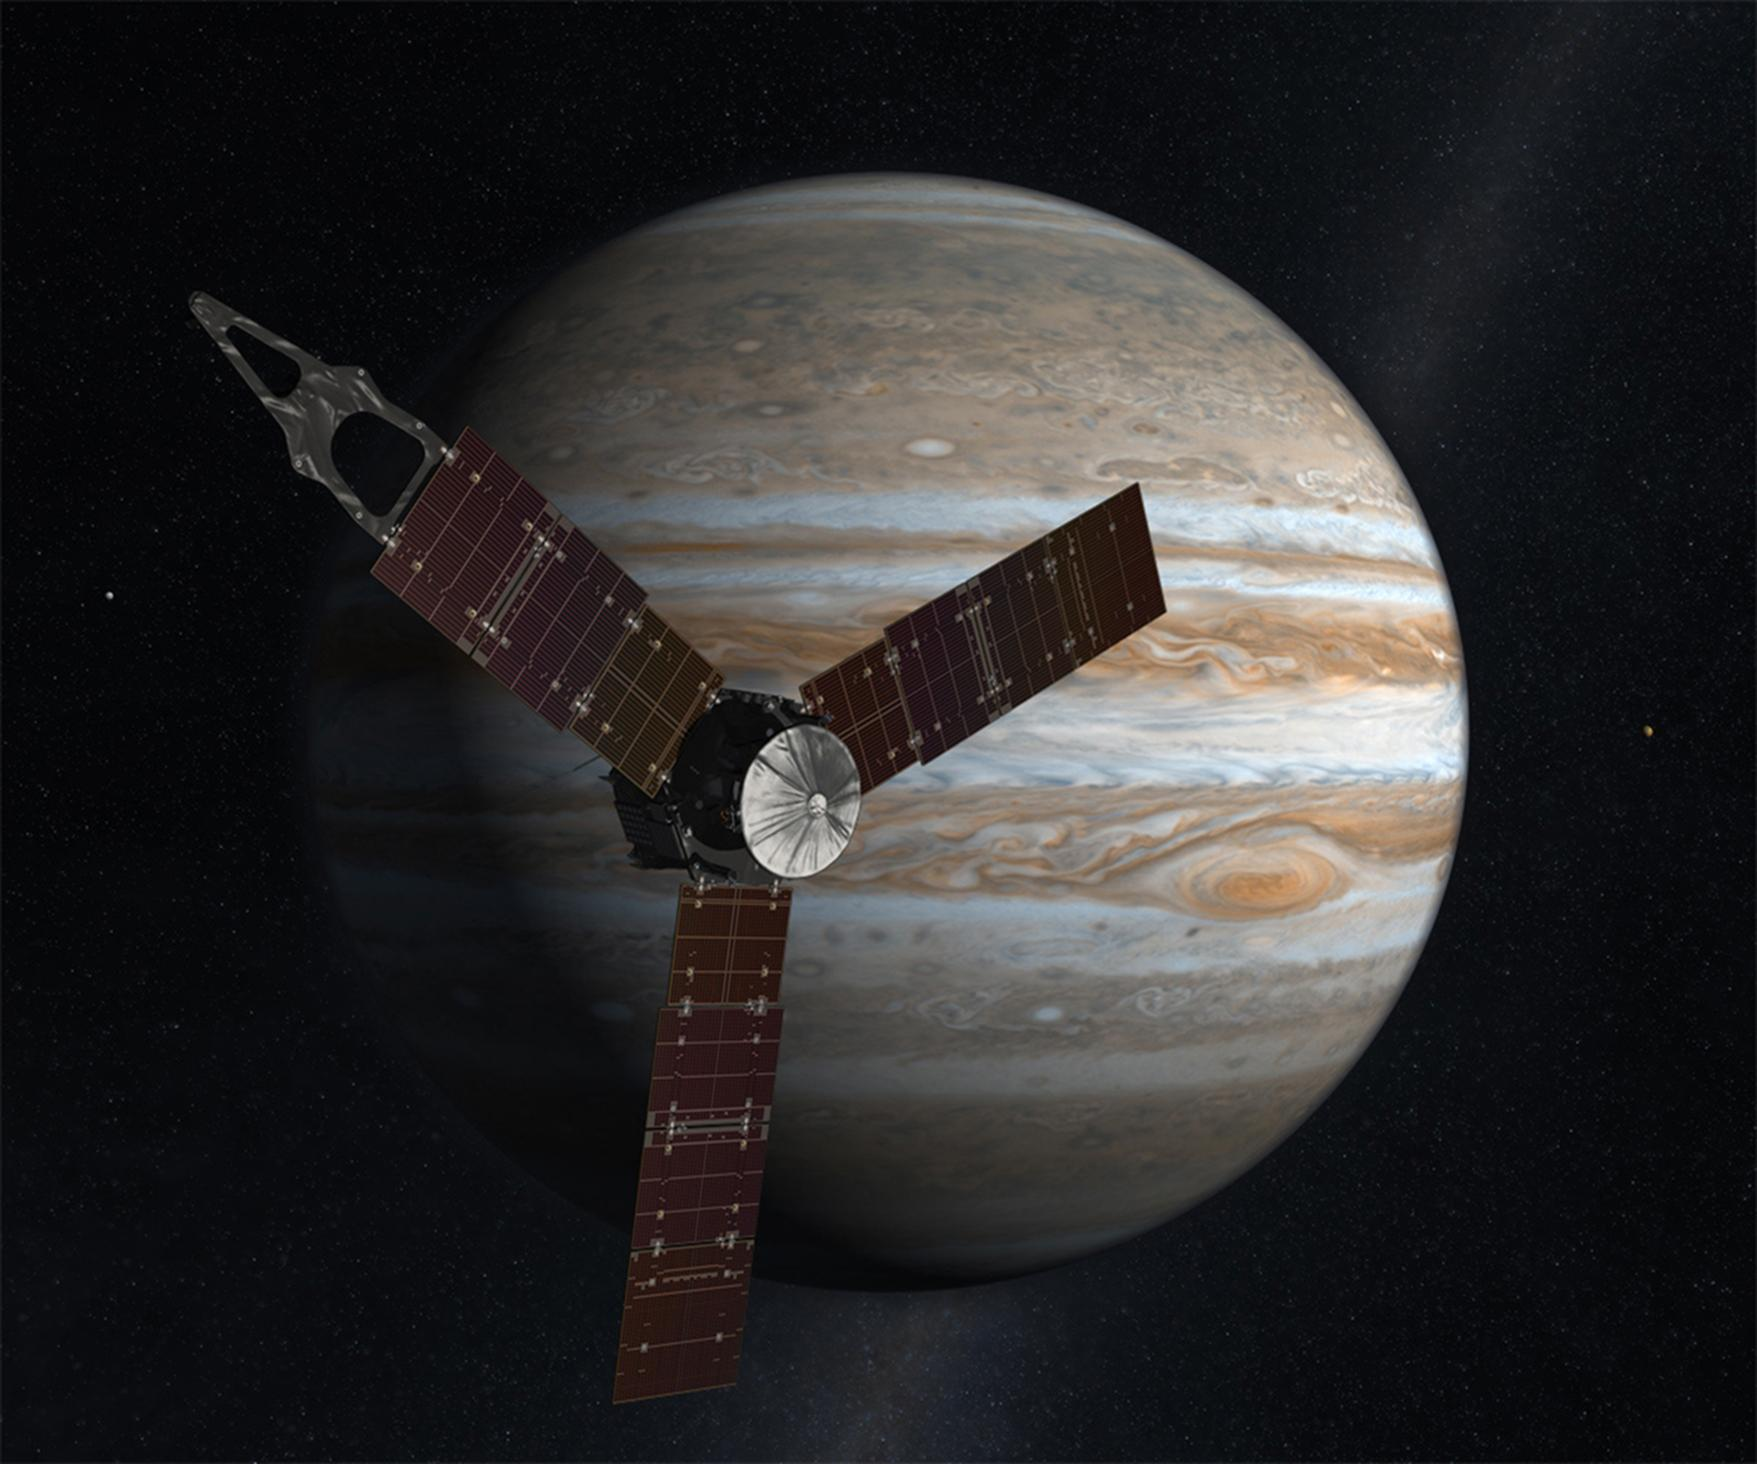 Spacecraft Closing in on Jupiter, Briefing to Discuss July 4 Arrival